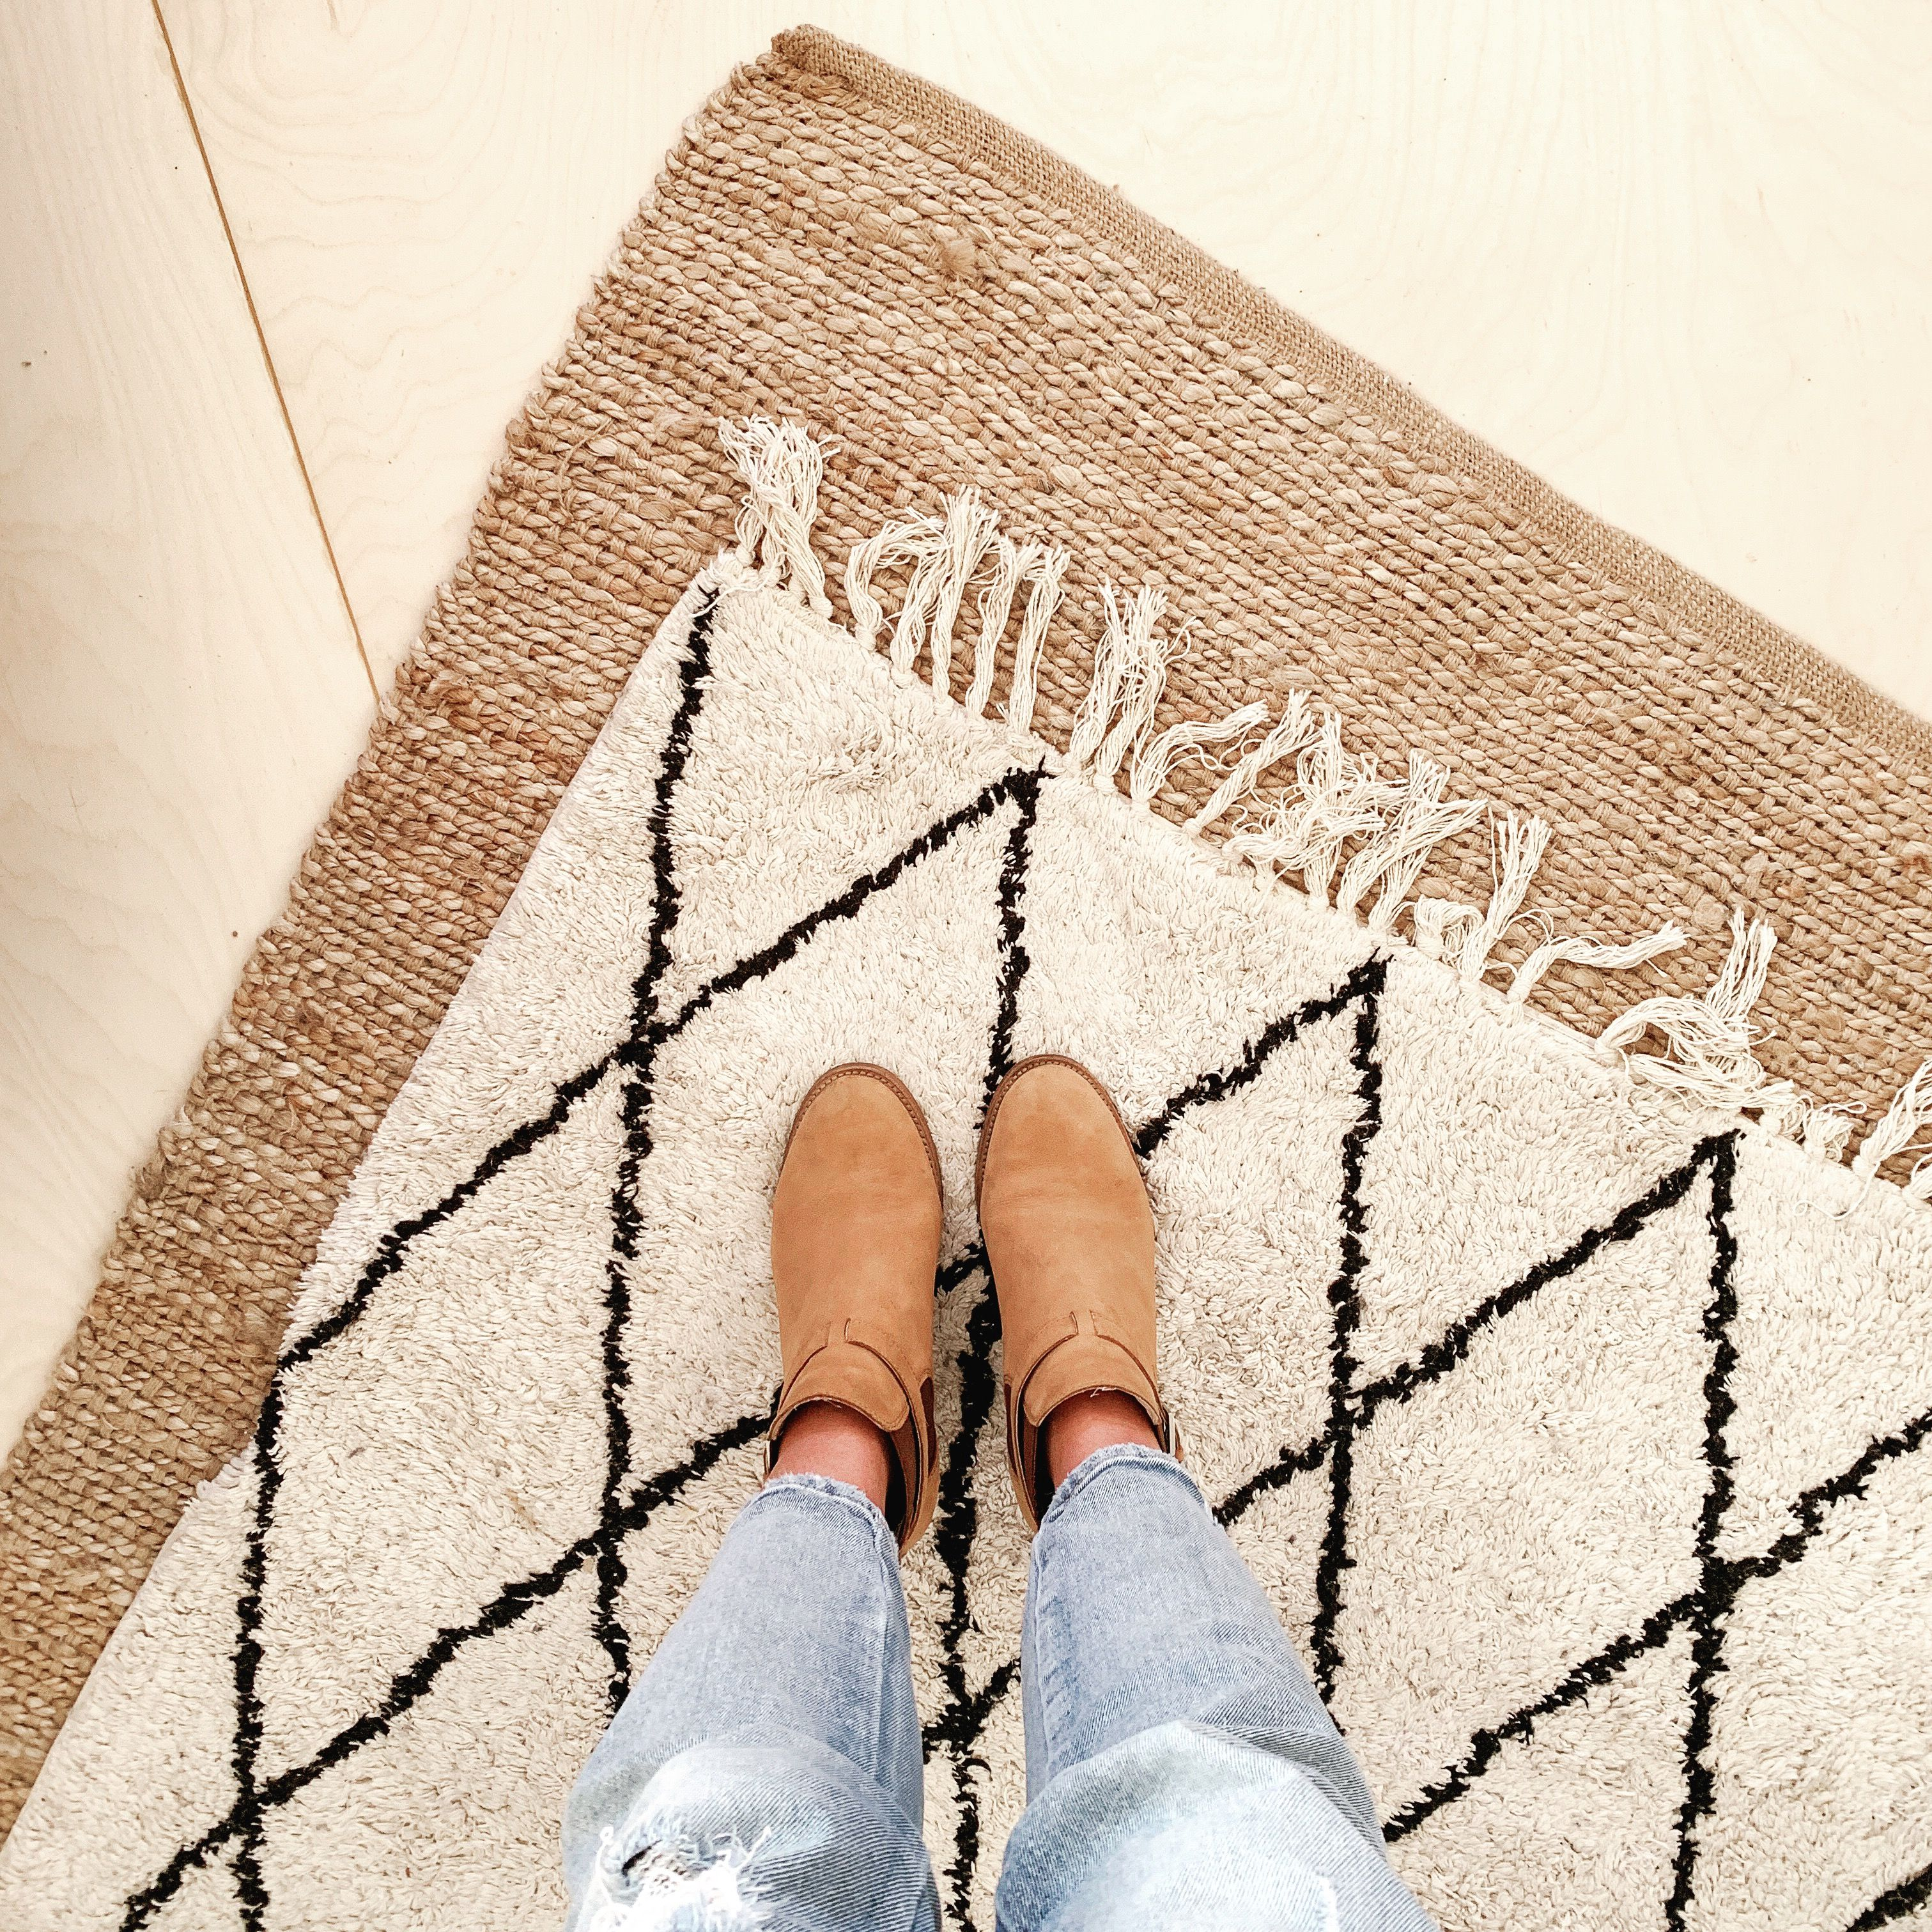 Layered Floor Rugs Kmart Created By The Musing Room Wooden